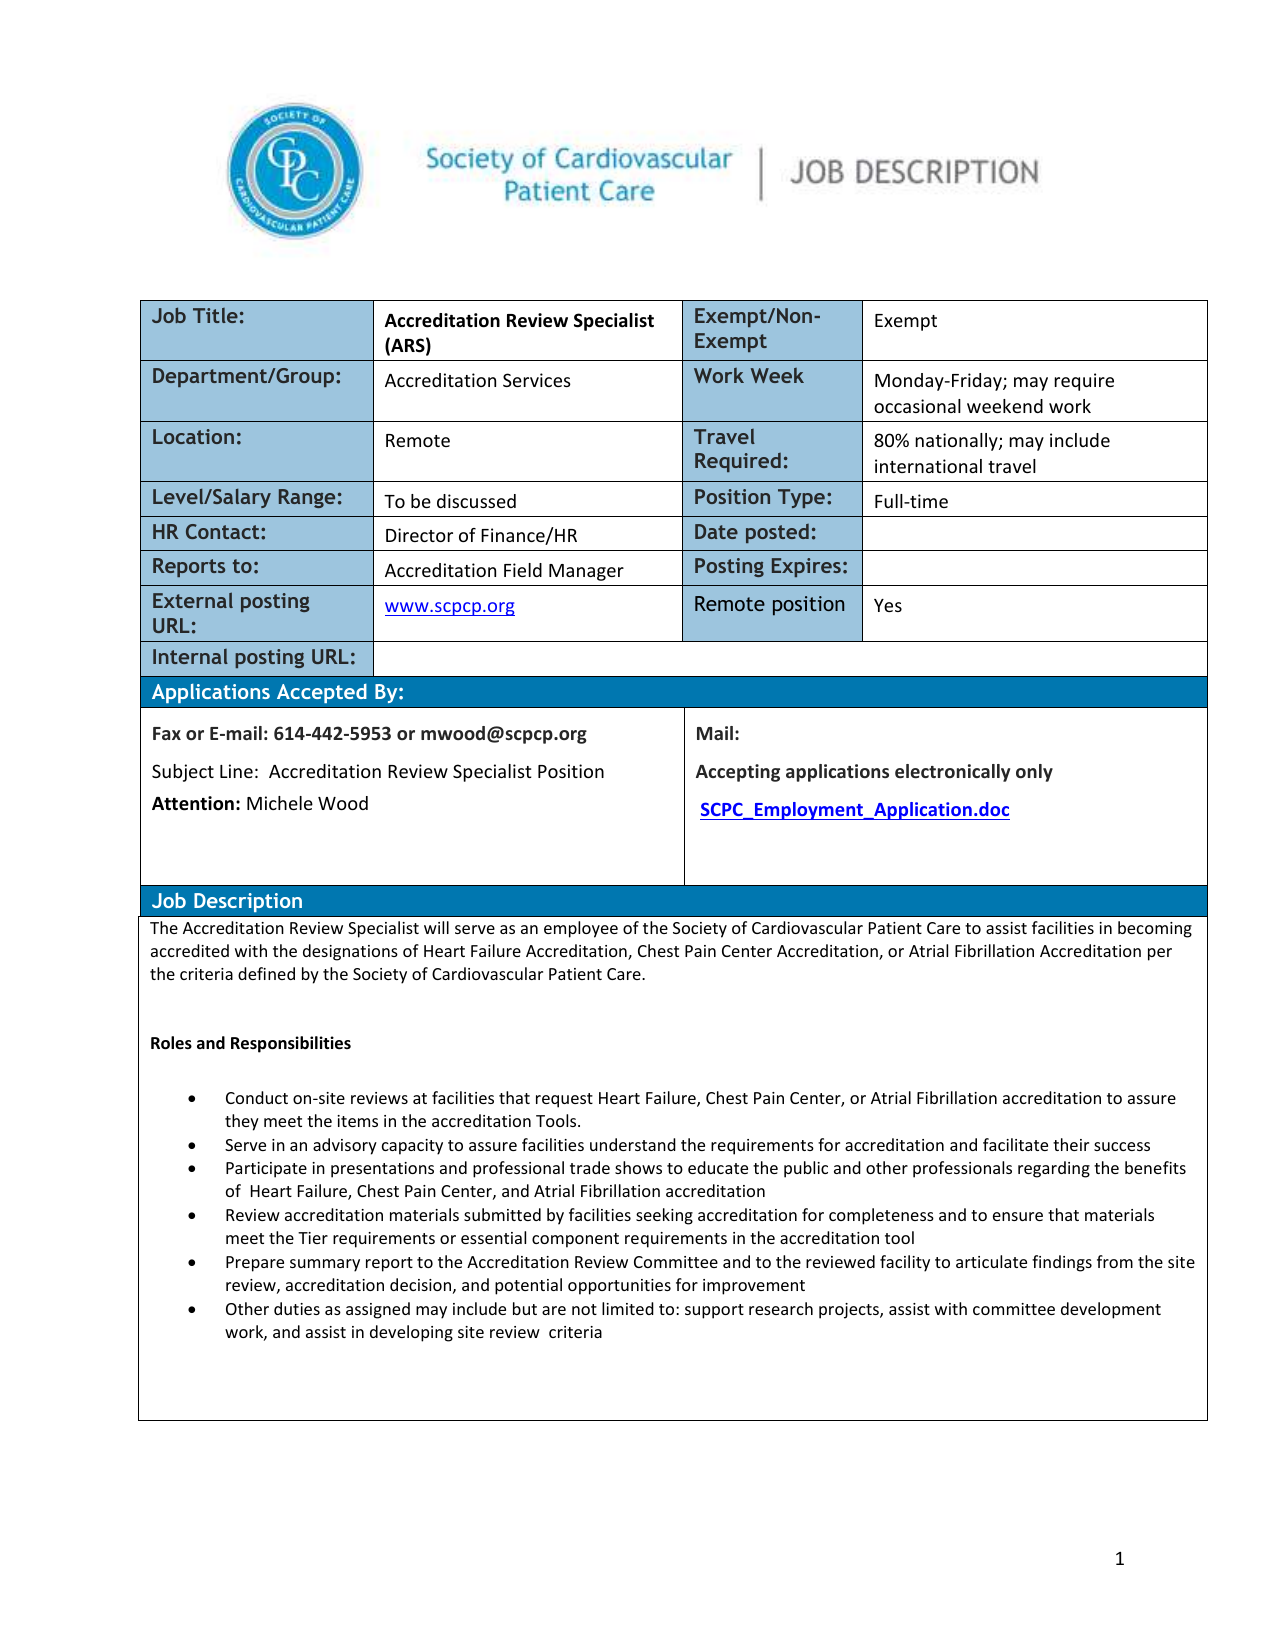 Job Title: Accreditation Review Specialist (ARS) Exempt/Non